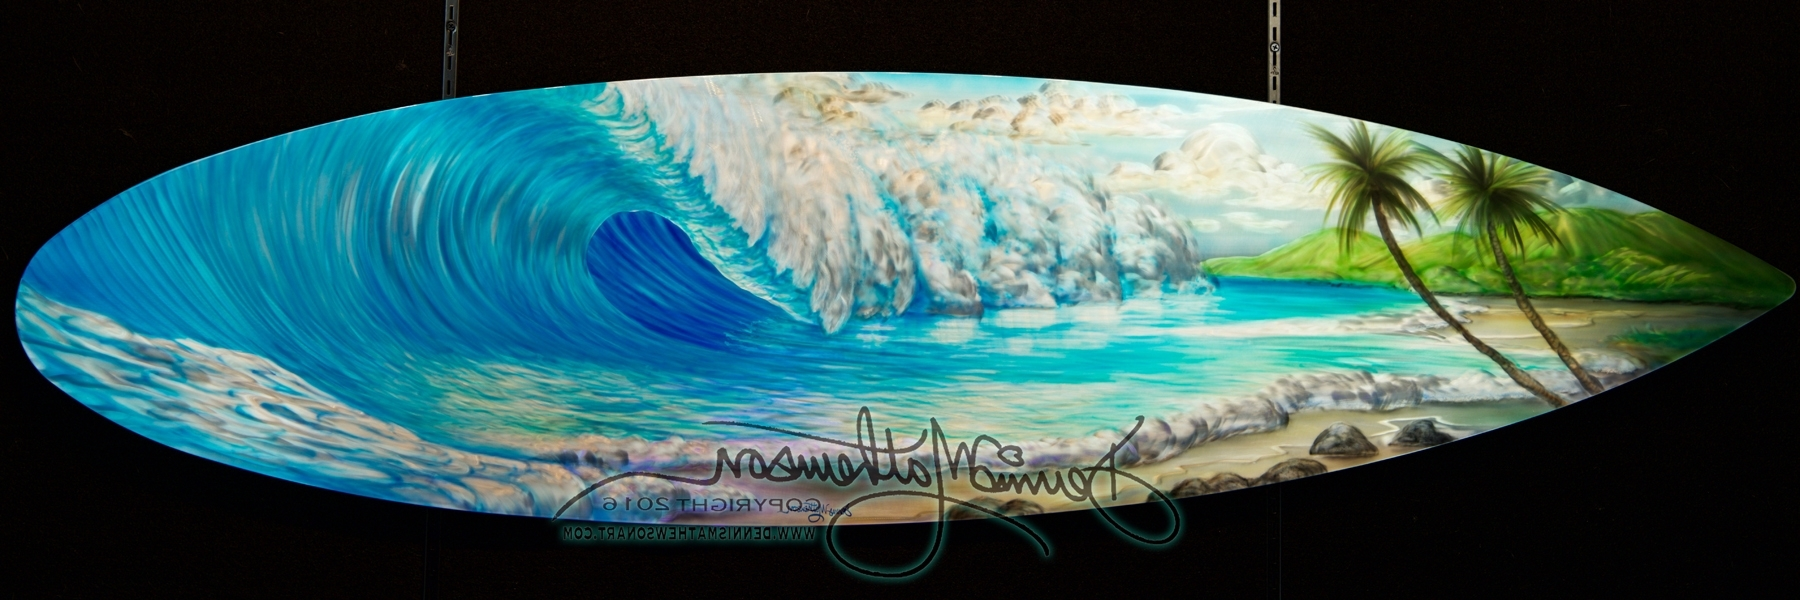 Surfboard Wall Art Inside Best And Newest Surfboard Wave #16 – Dennis Mathewson Art (View 9 of 15)